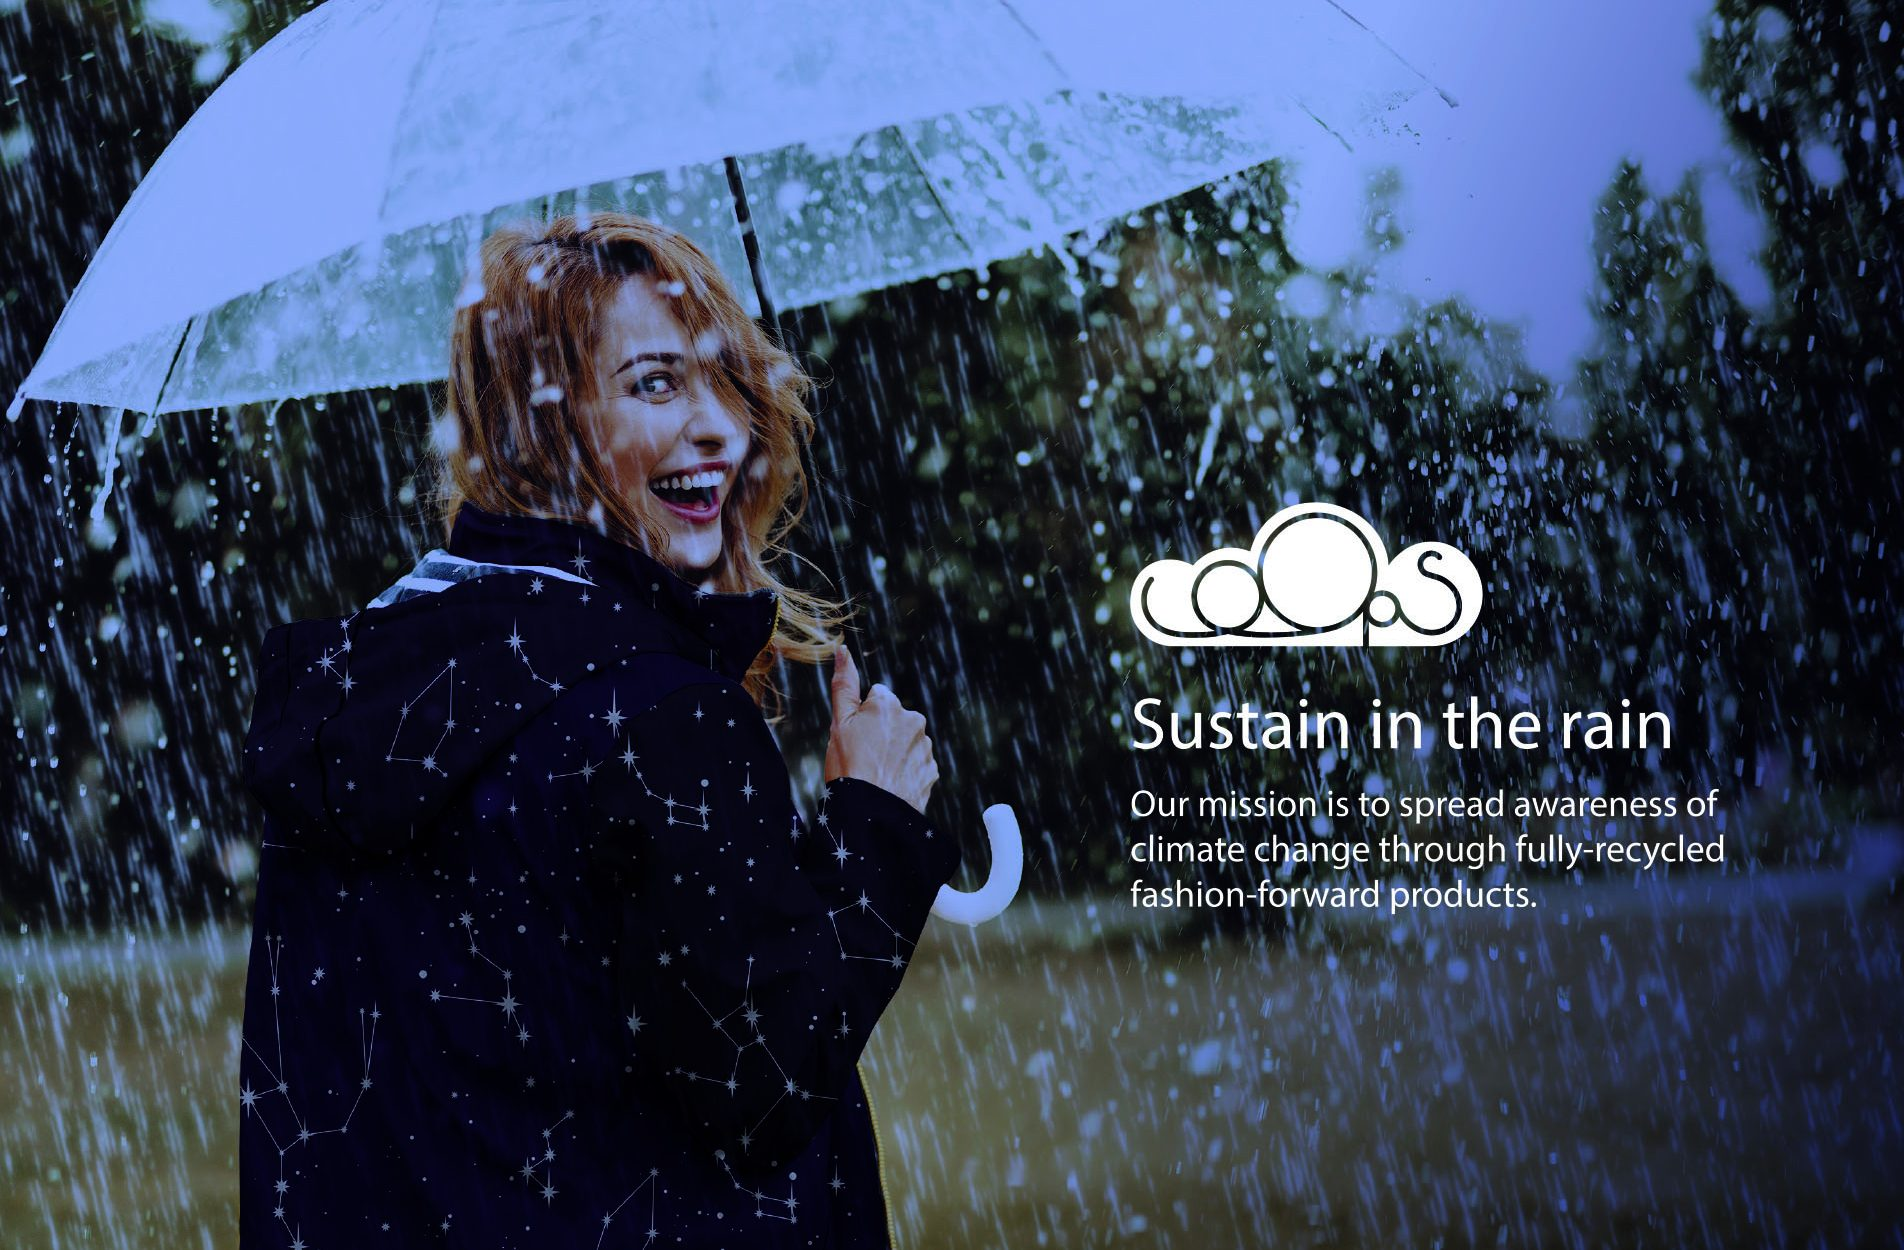 Loops advert - a woman caught in the rain